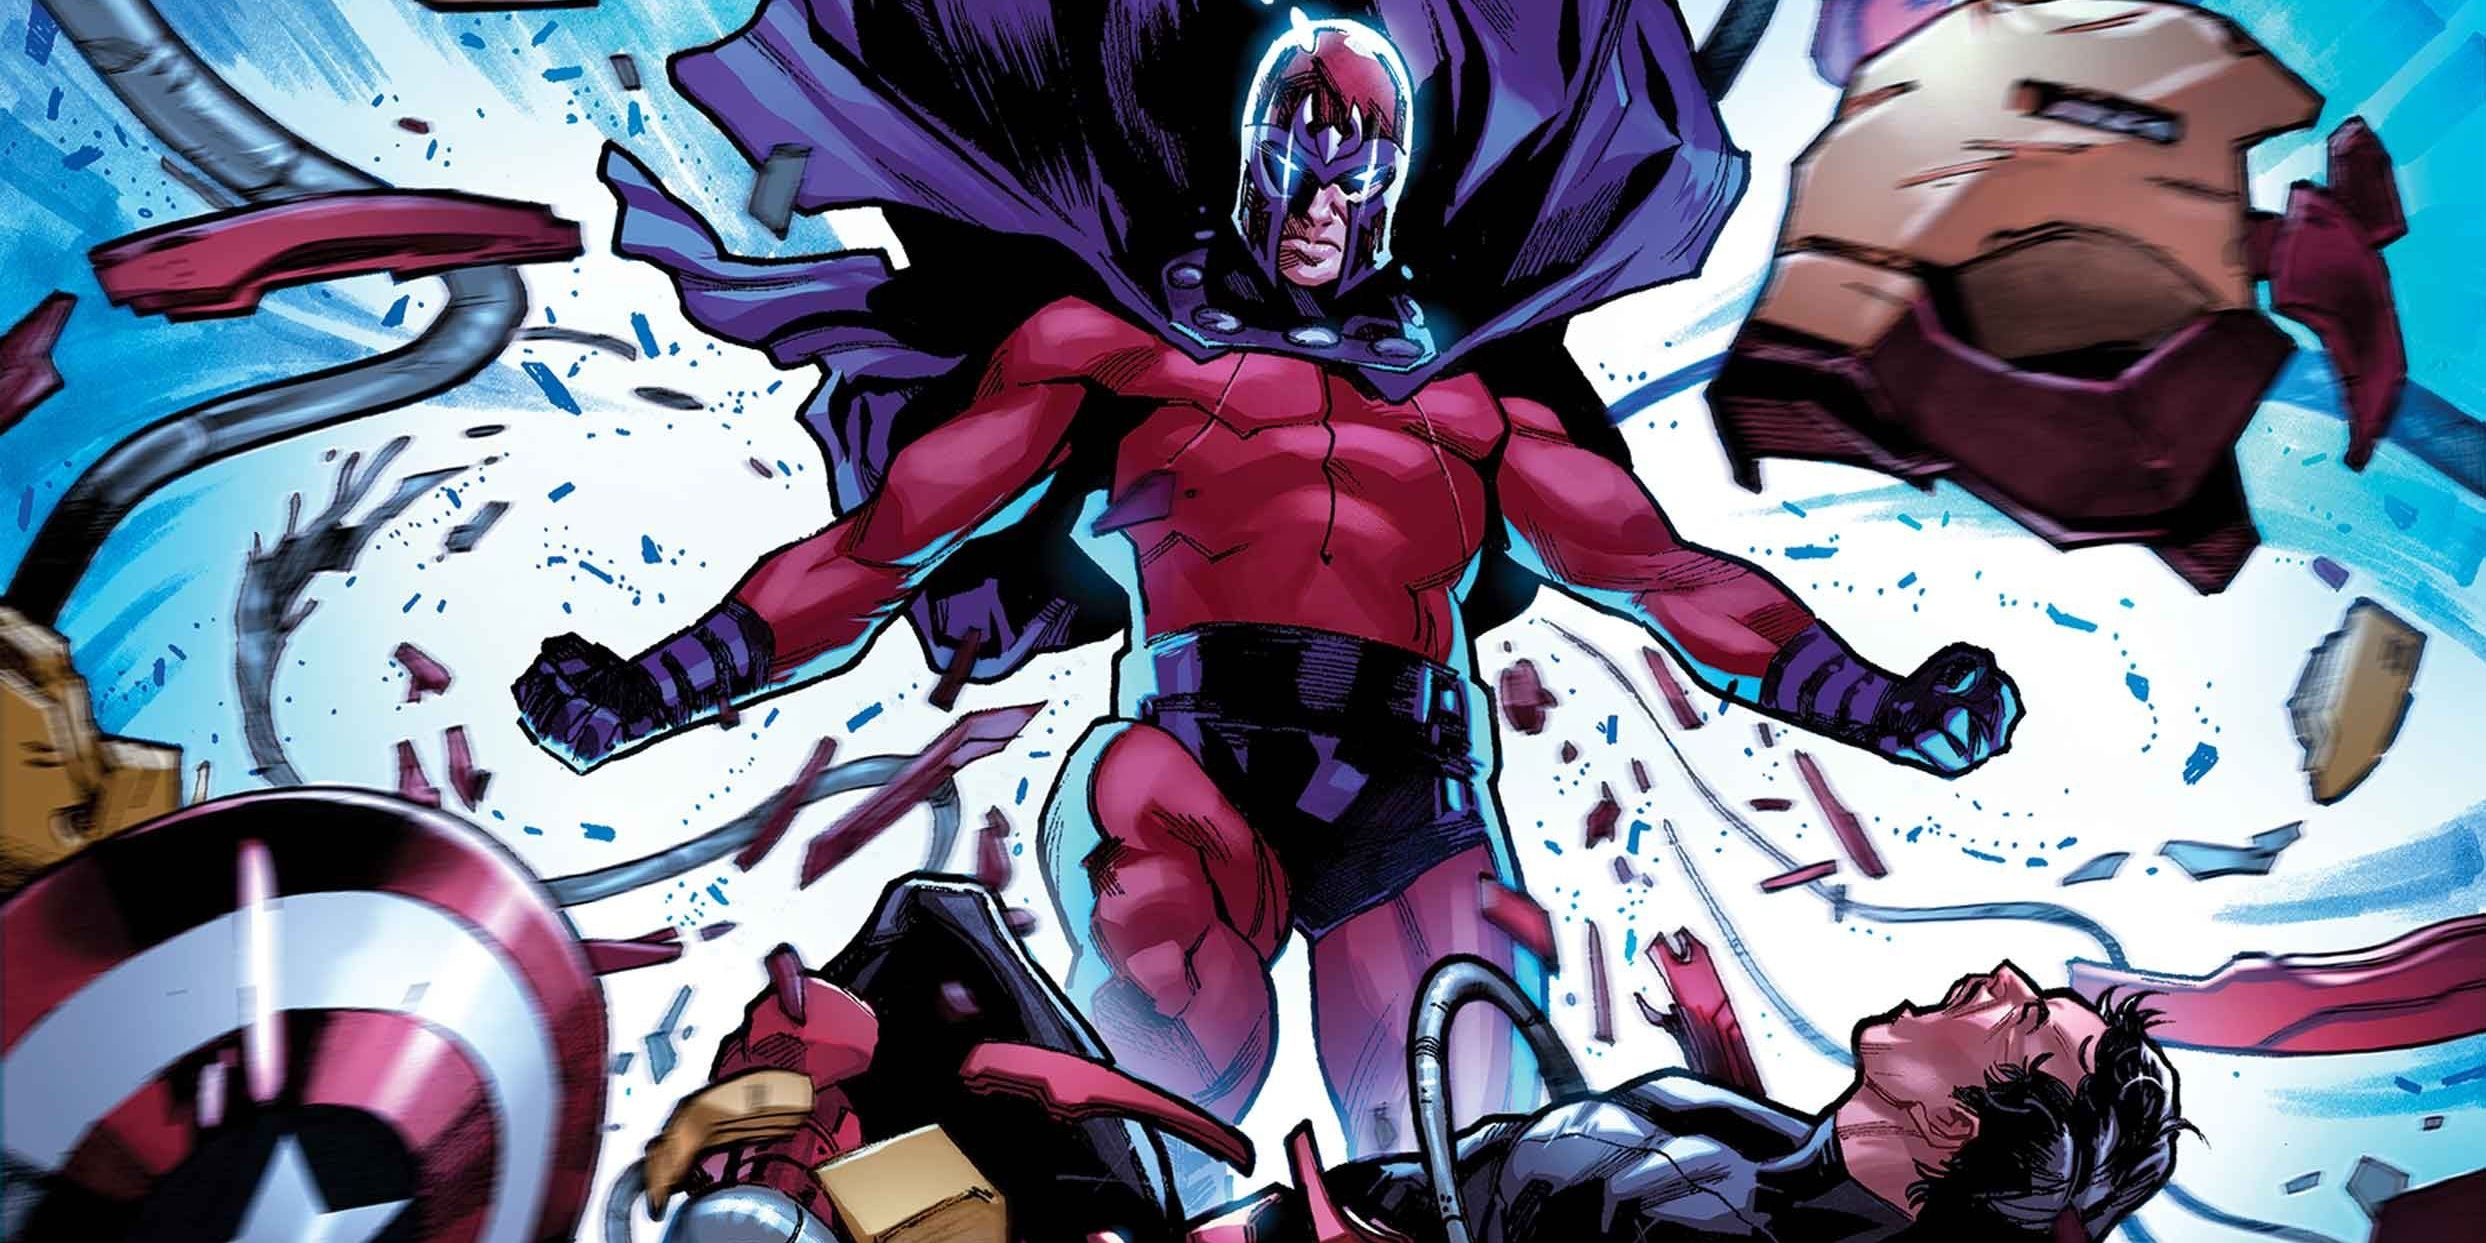 Trial of Magneto Teaser Hints At X-Males Versus Avengers